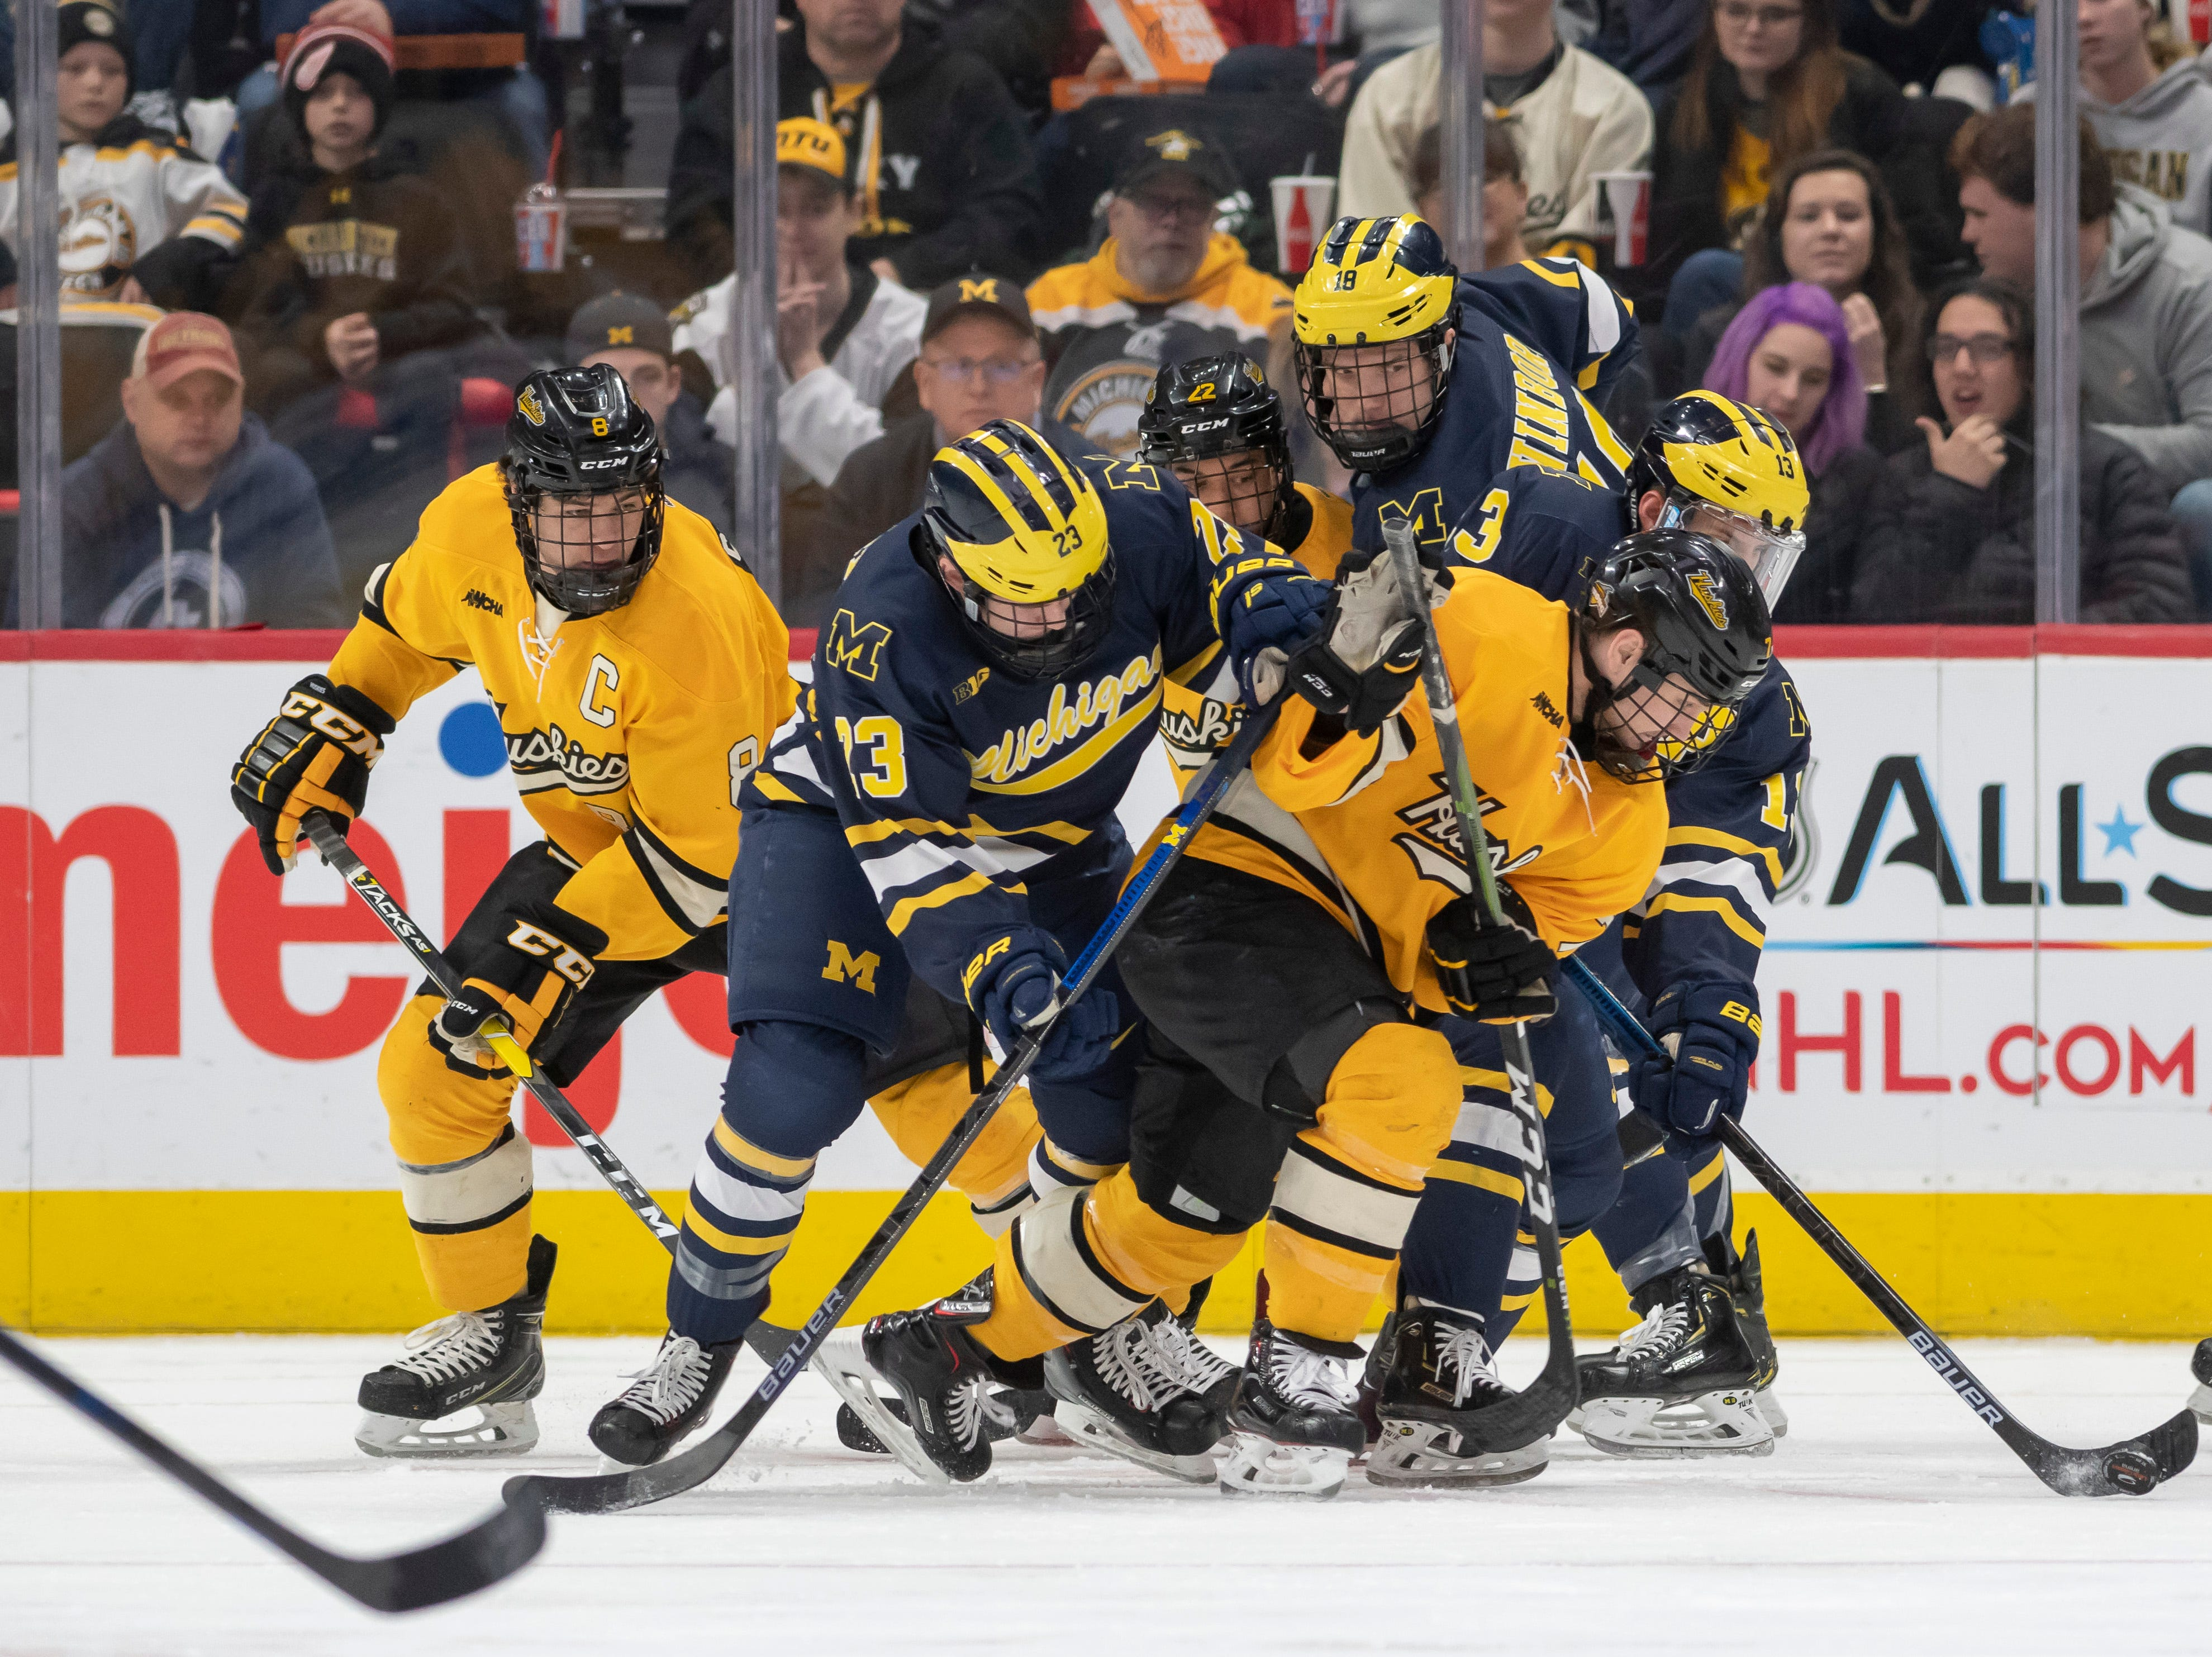 Michigan and Michigan Tech battle for the puck in the first period.